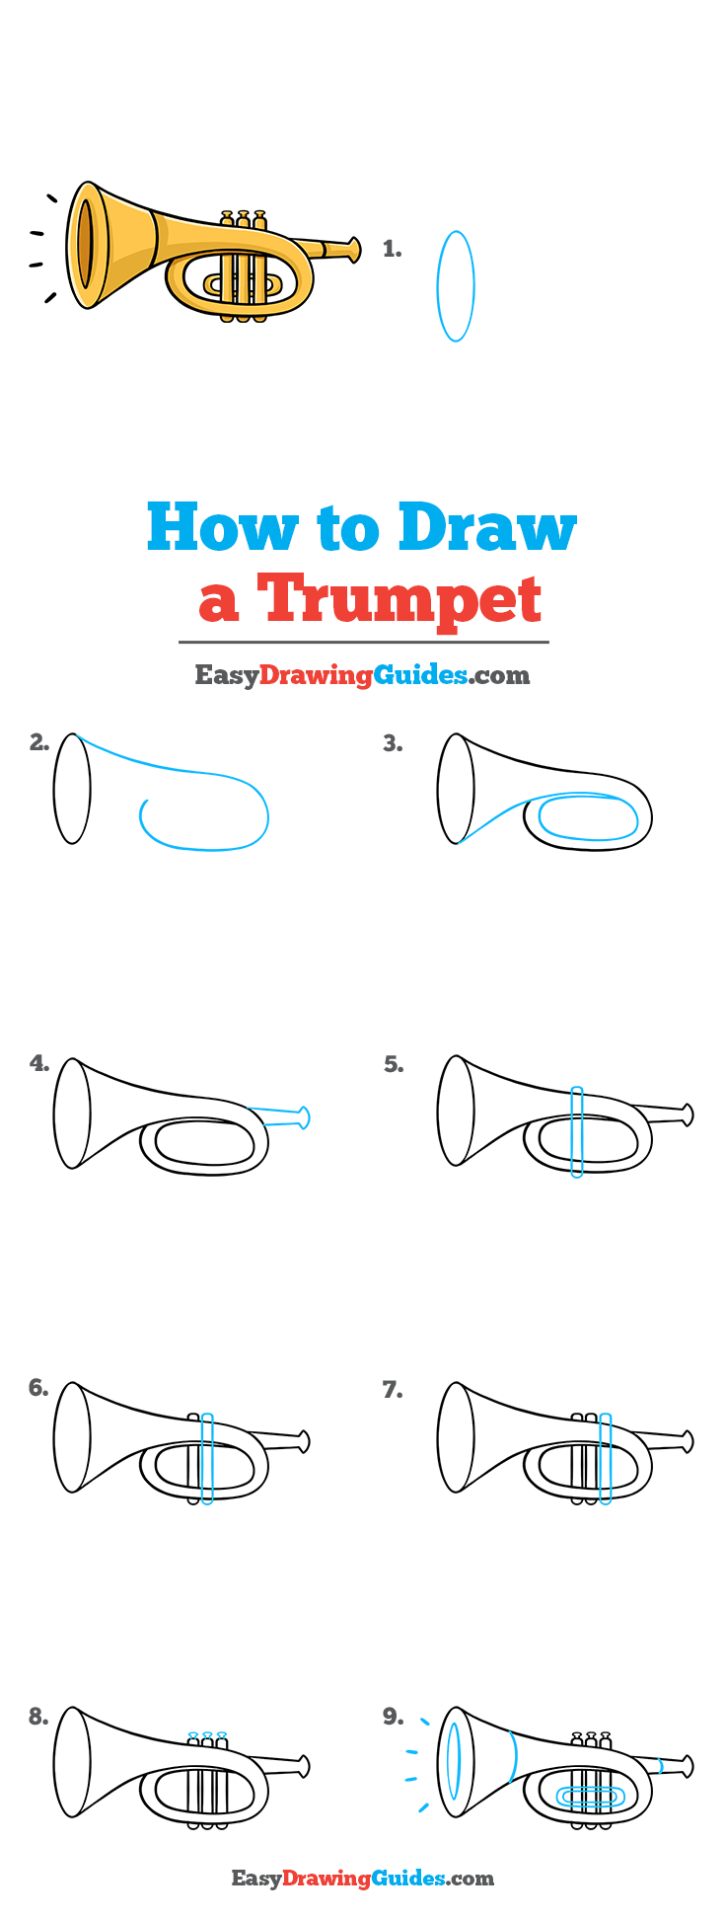 Trumpet Drawing Lesson Free Online Drawing Tutorial For Kids Get The Free Printable Step By Step Drawing In 2020 Drawing Tutorial Drawing Tutorial Easy Easy Drawings